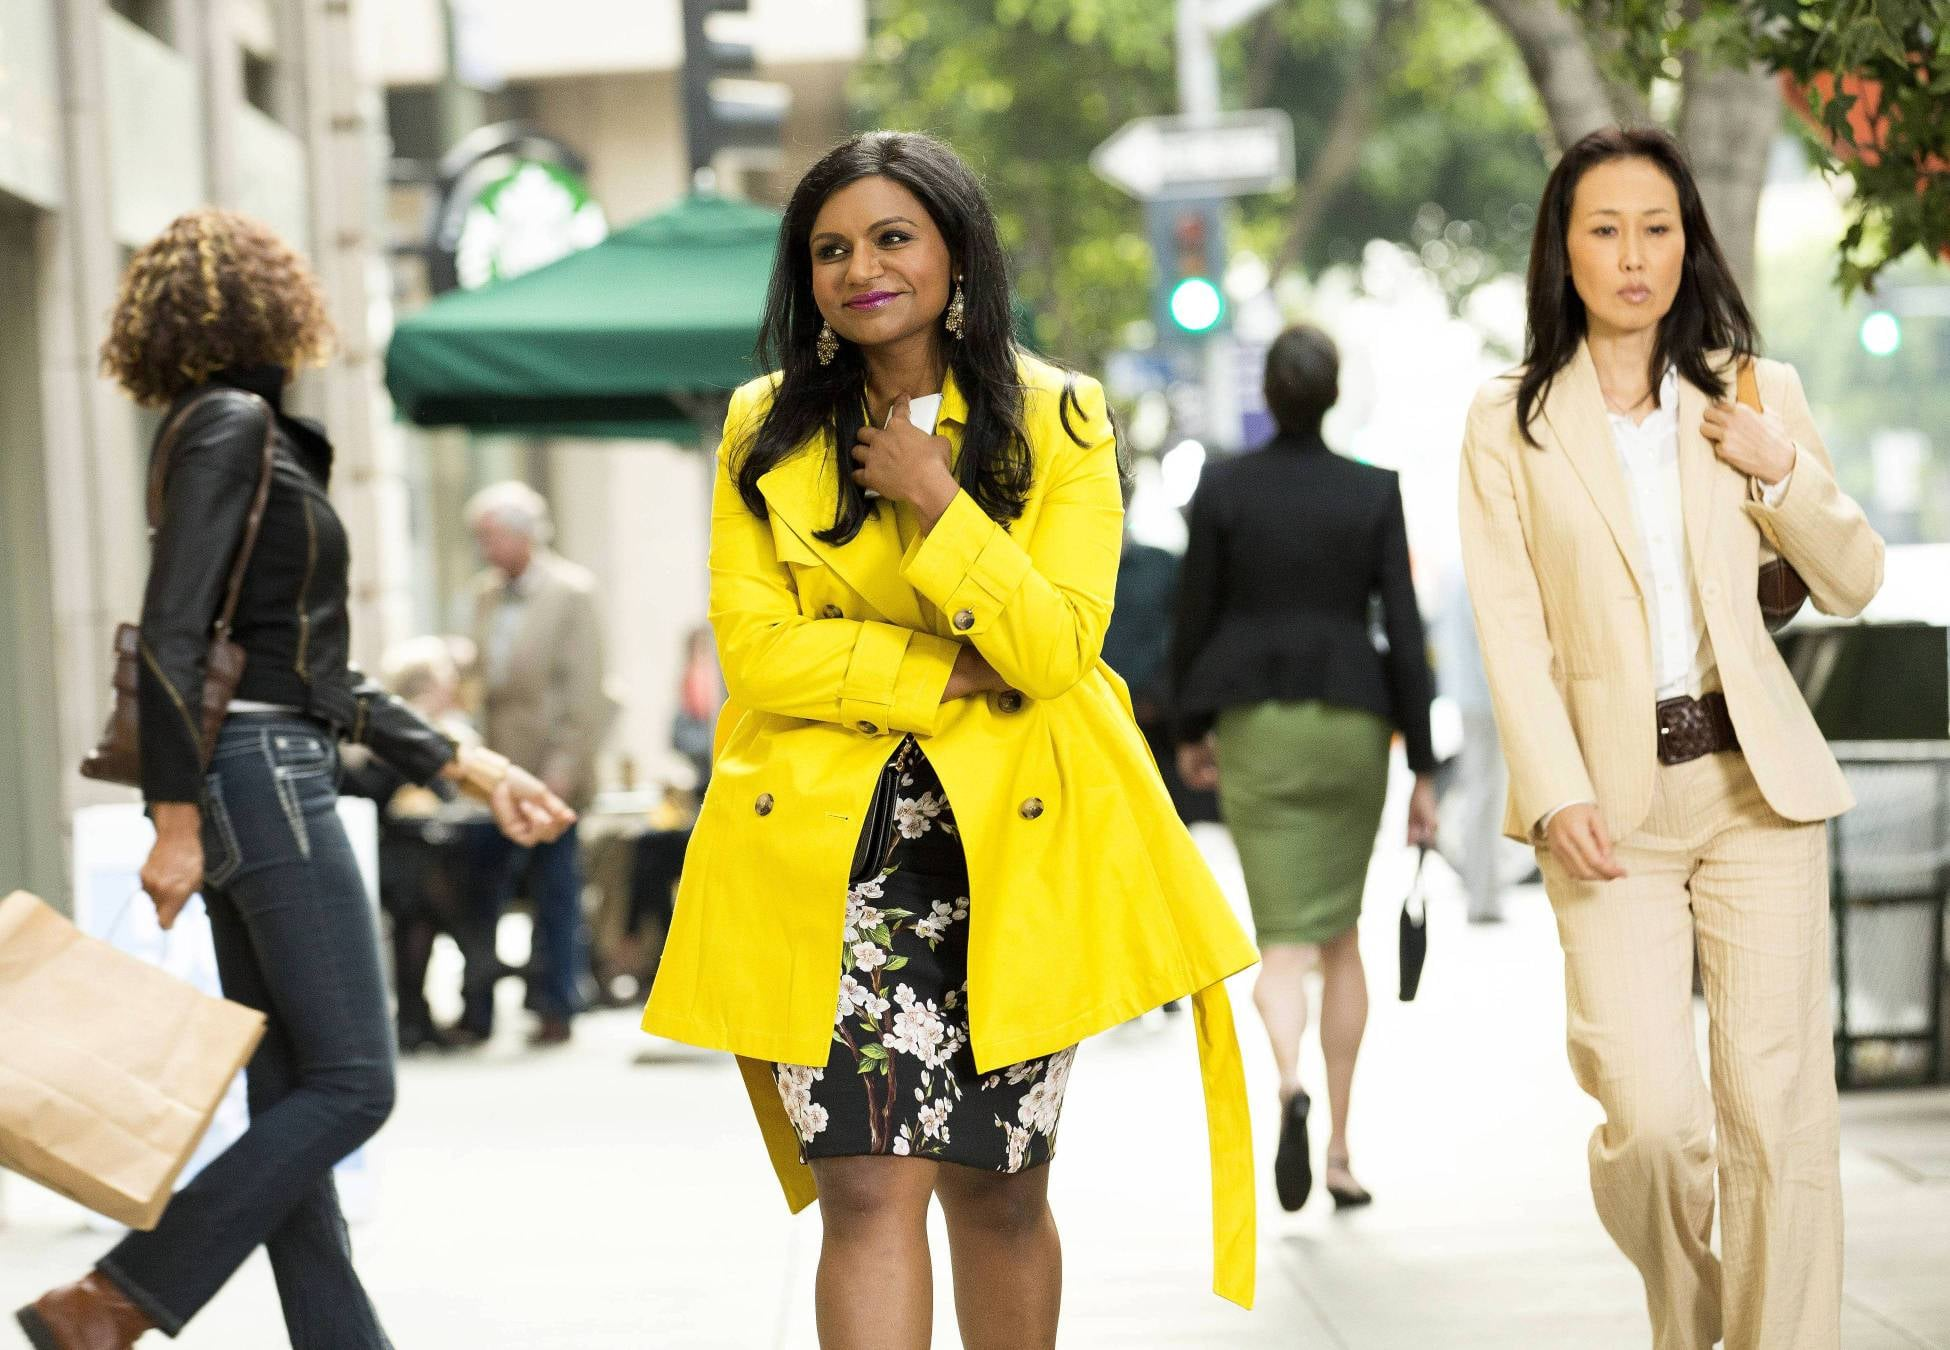 Mindy looks happy in the season finale — you can't wear yellow and be sad.